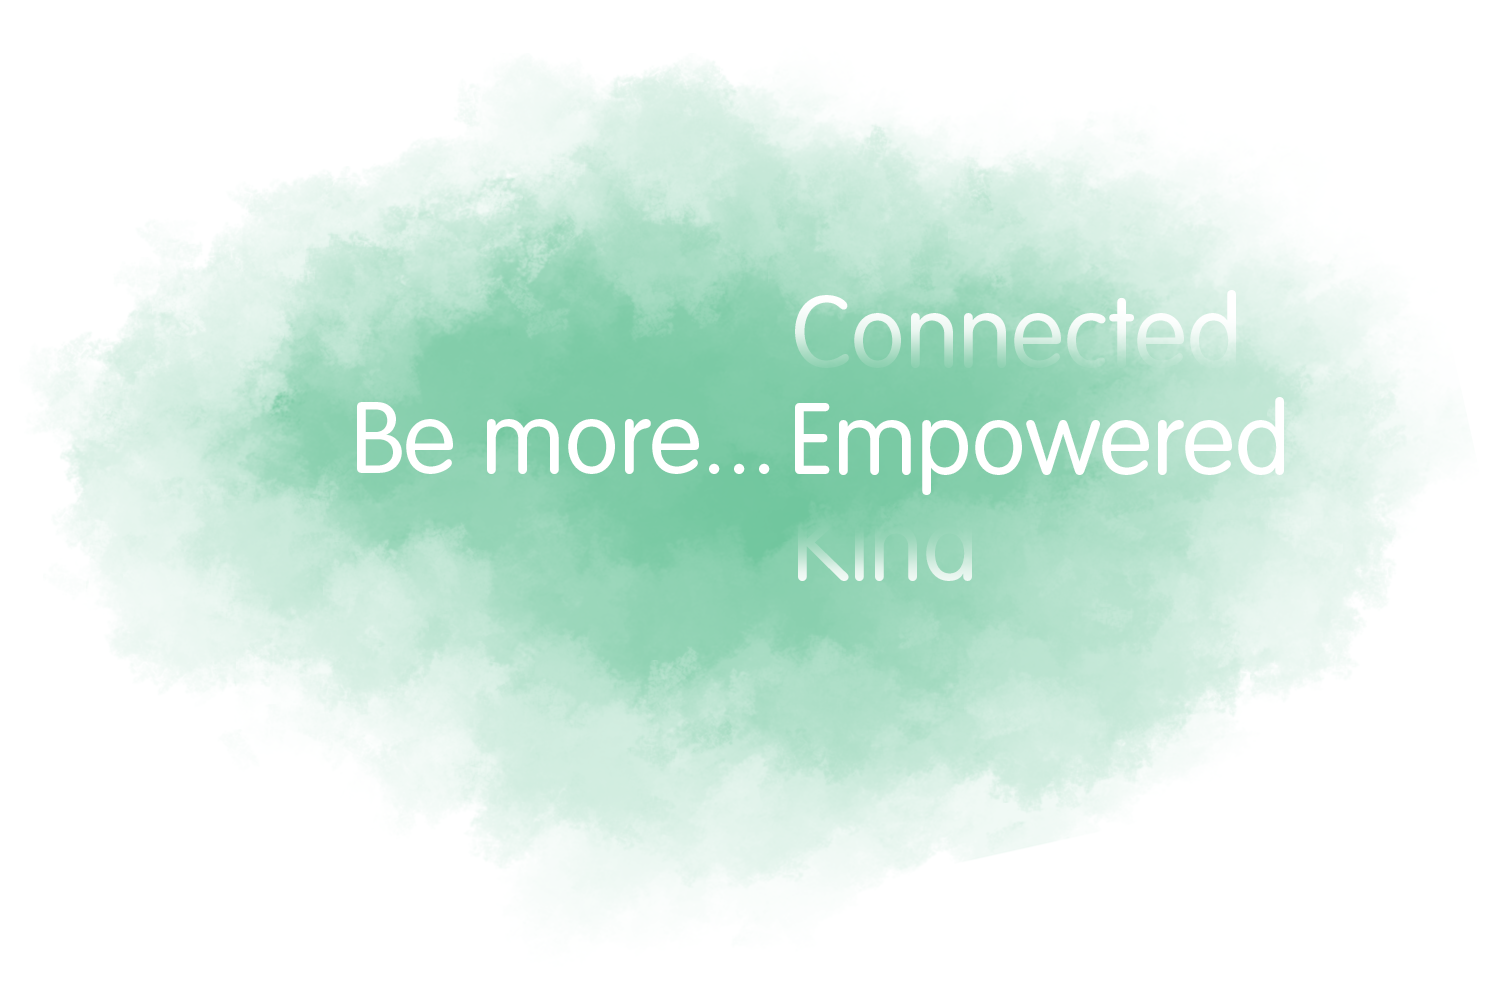 BLC Blog - Be more... Empowered